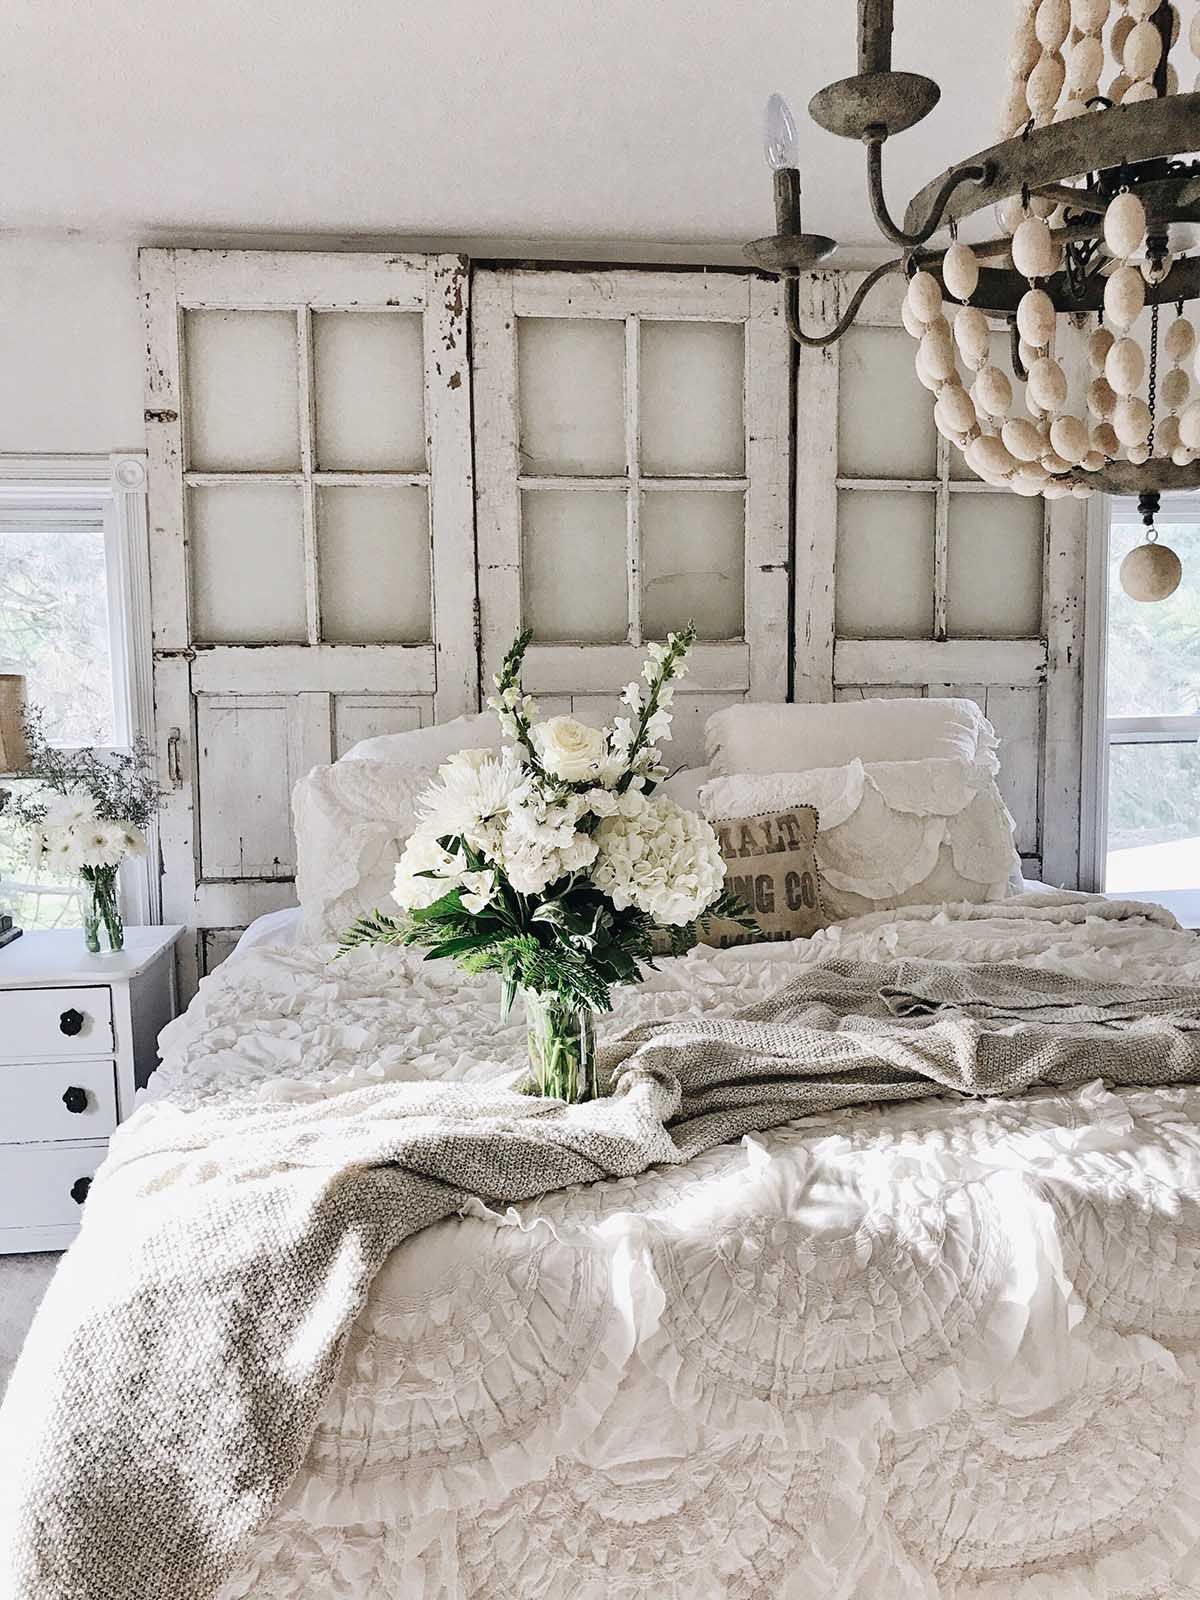 Reclaimed Doors as Headboard with Flowers